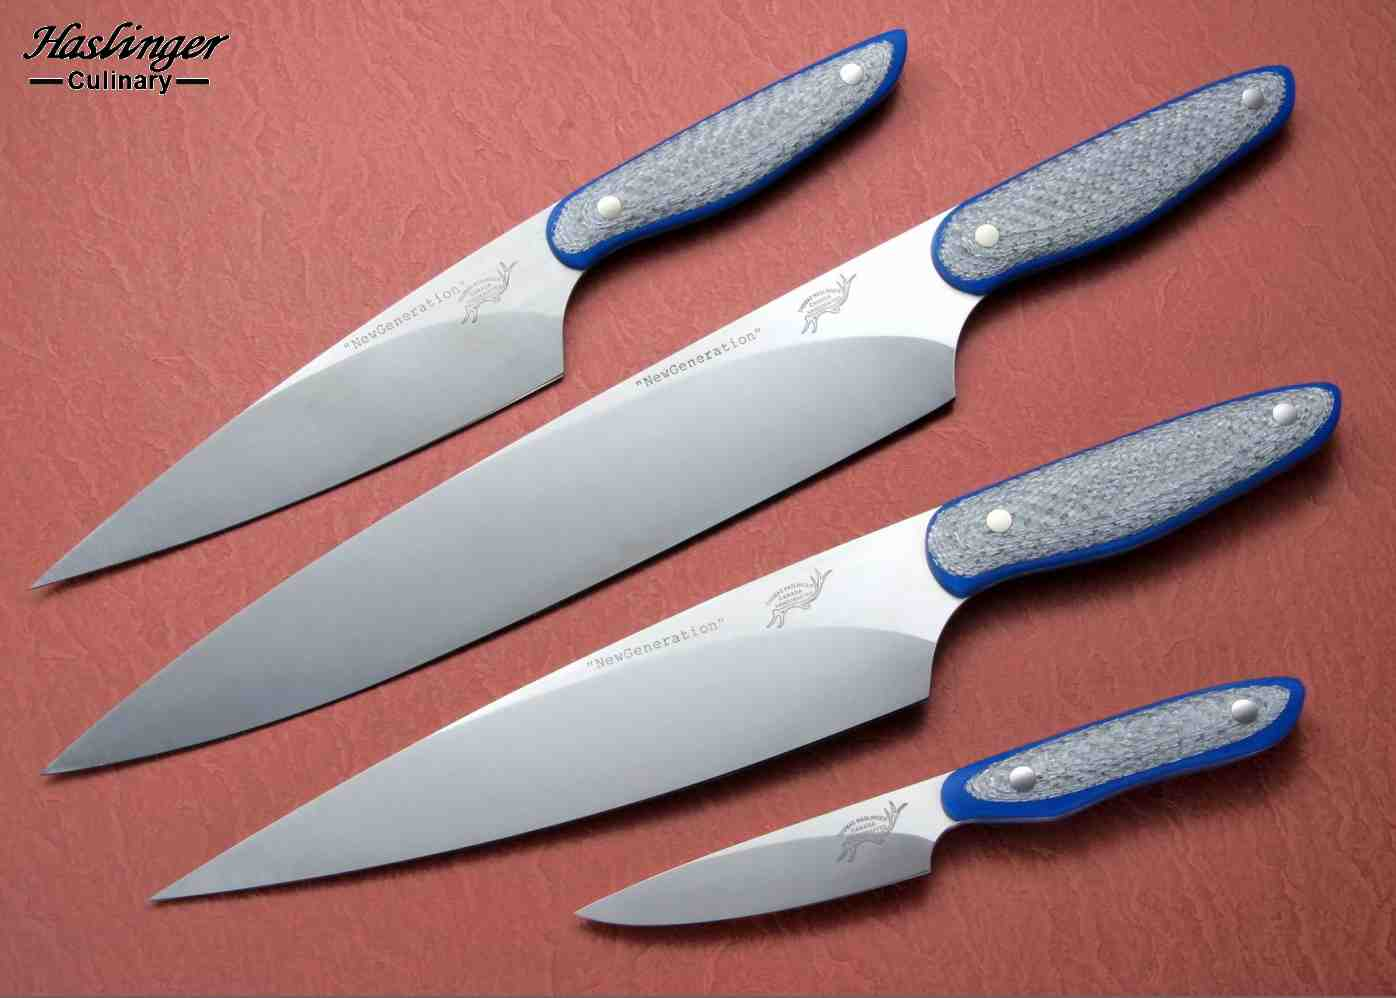 New Generation set in silver twill and G10 handles